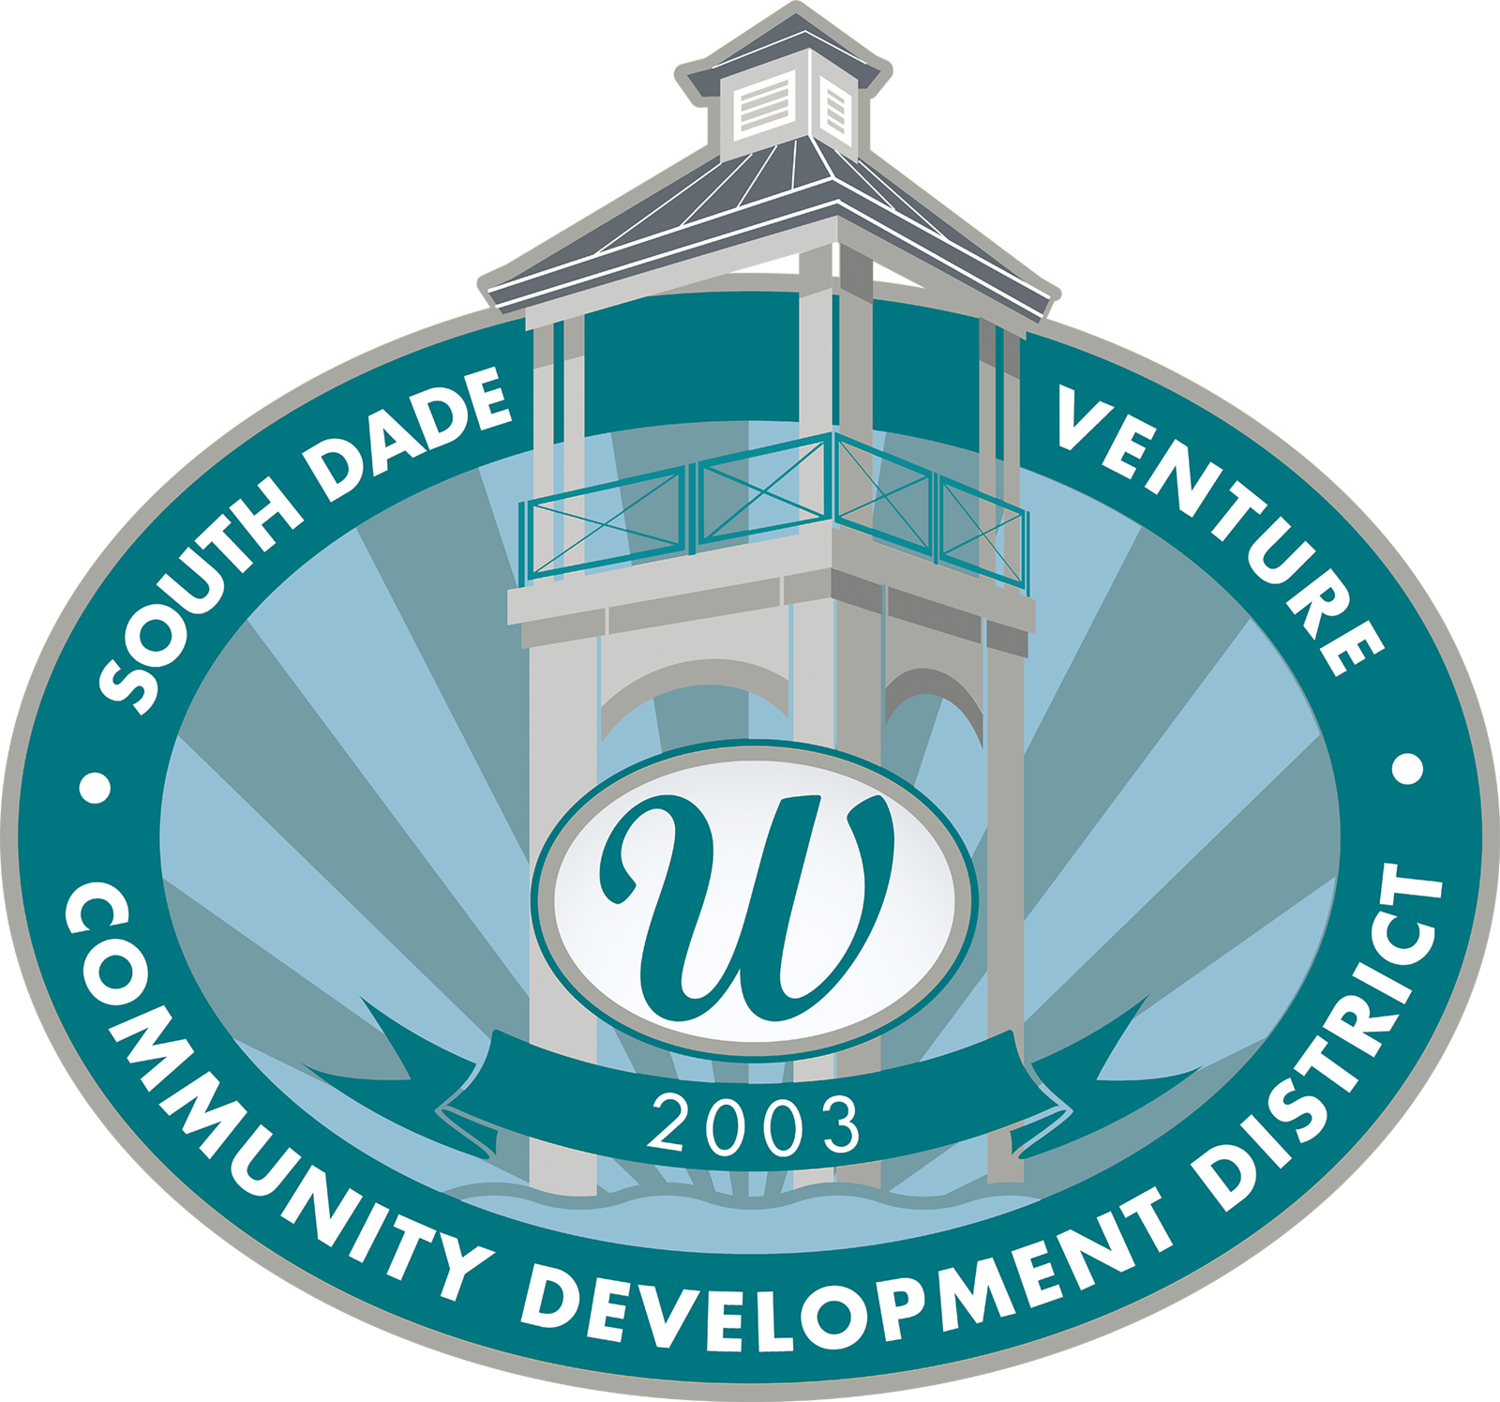 Southdade Community Development District